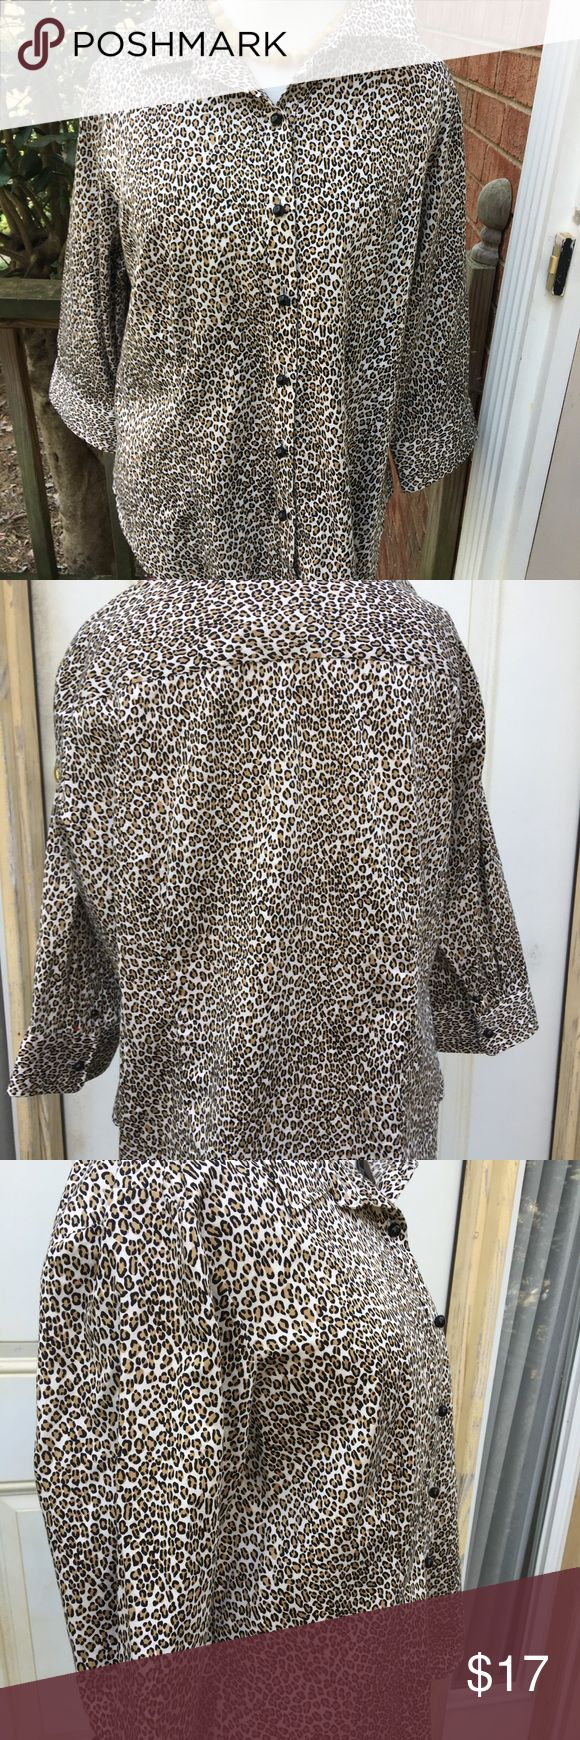 NWOT Talbots's Leopard Top This brand new top is a rich leopard print. 98% cotton; 2% Lycra spandex for a bit of stretch.adorable brown ball buttons. 3/4 sleeves with 2 buttons on each sleeve. You will look polished and put-together in this lovely top. Pristine condition. Talbots Tops Blouses